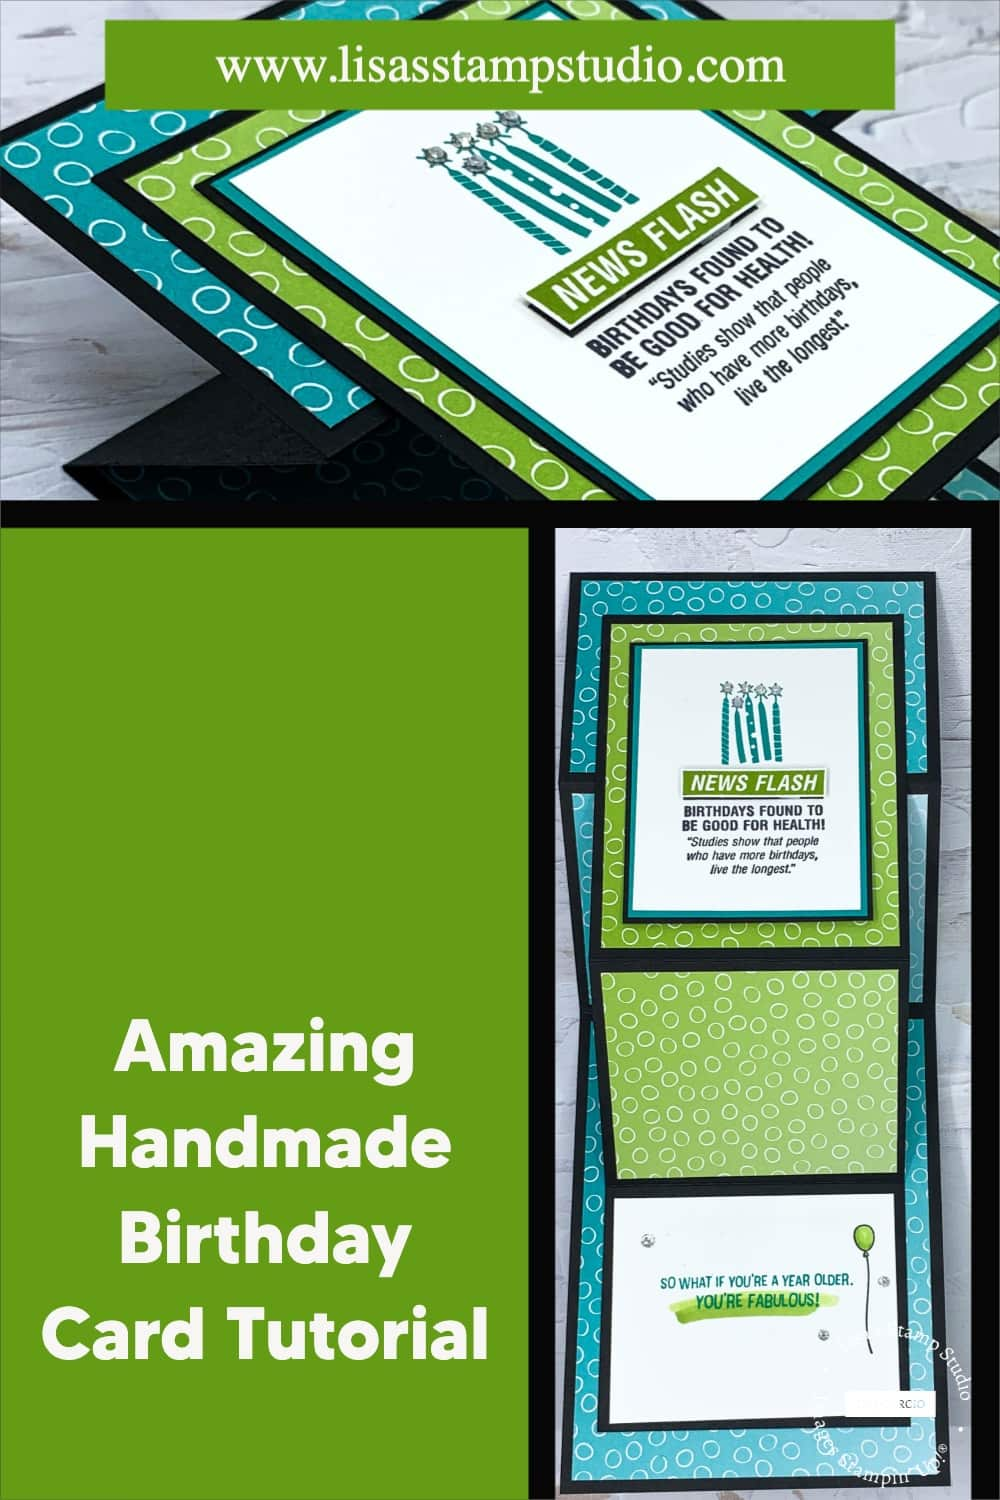 Save this amazing handmade birthday card to your pinterest board